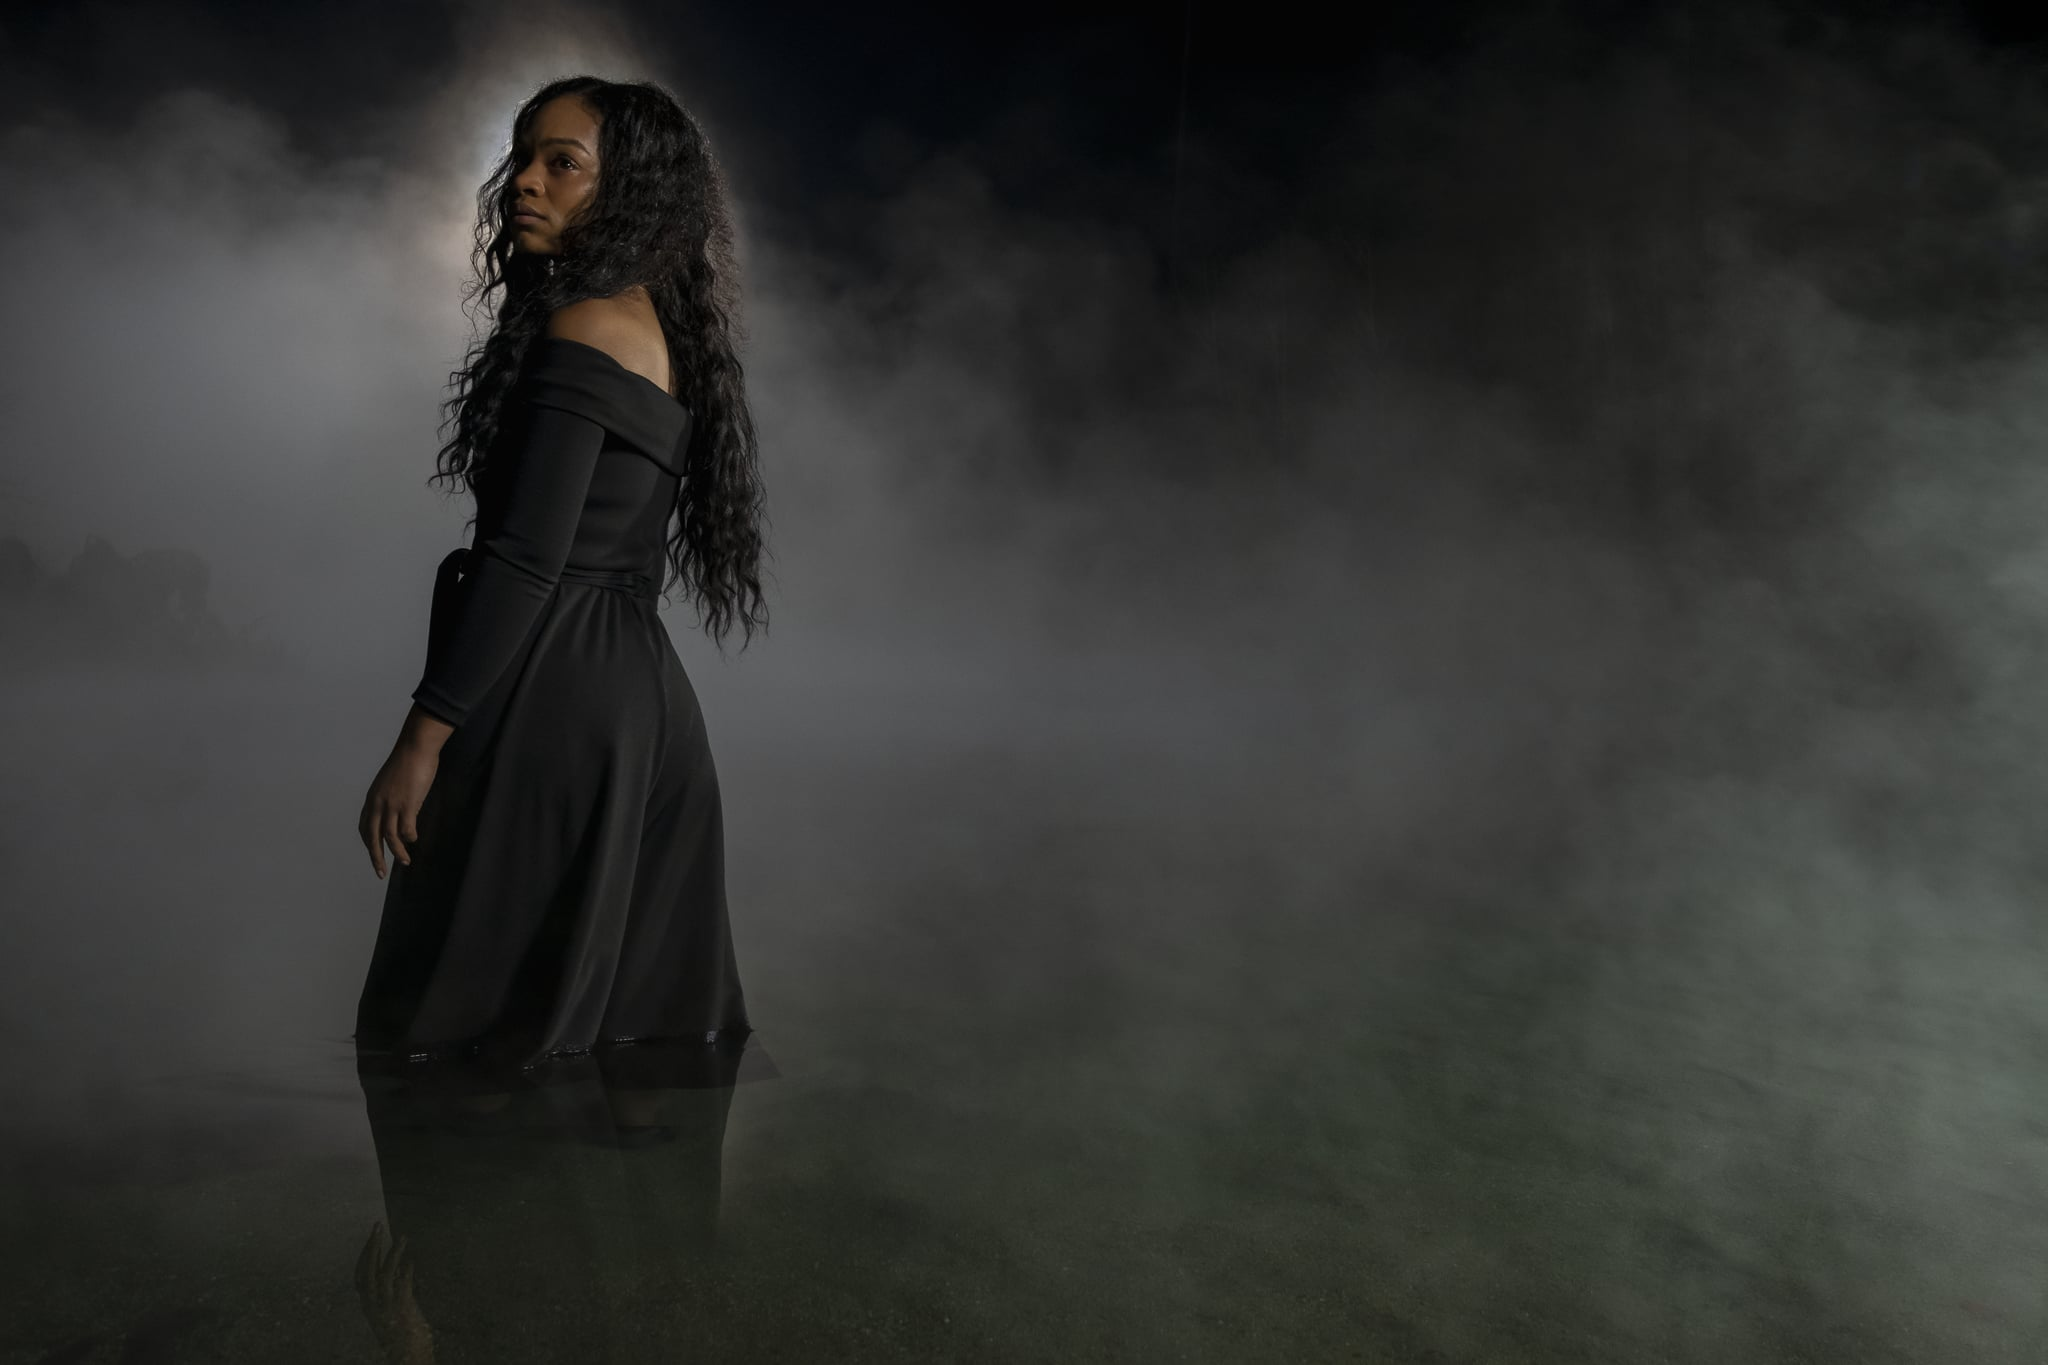 THE HAUNTING OF BLY MANOR (L to R) TAHIRAH SHARIF as REBECCA JESSEL in THE HAUNTING OF BLY MANOR Cr. EIKE SCHROTER/NETFLIX  2020